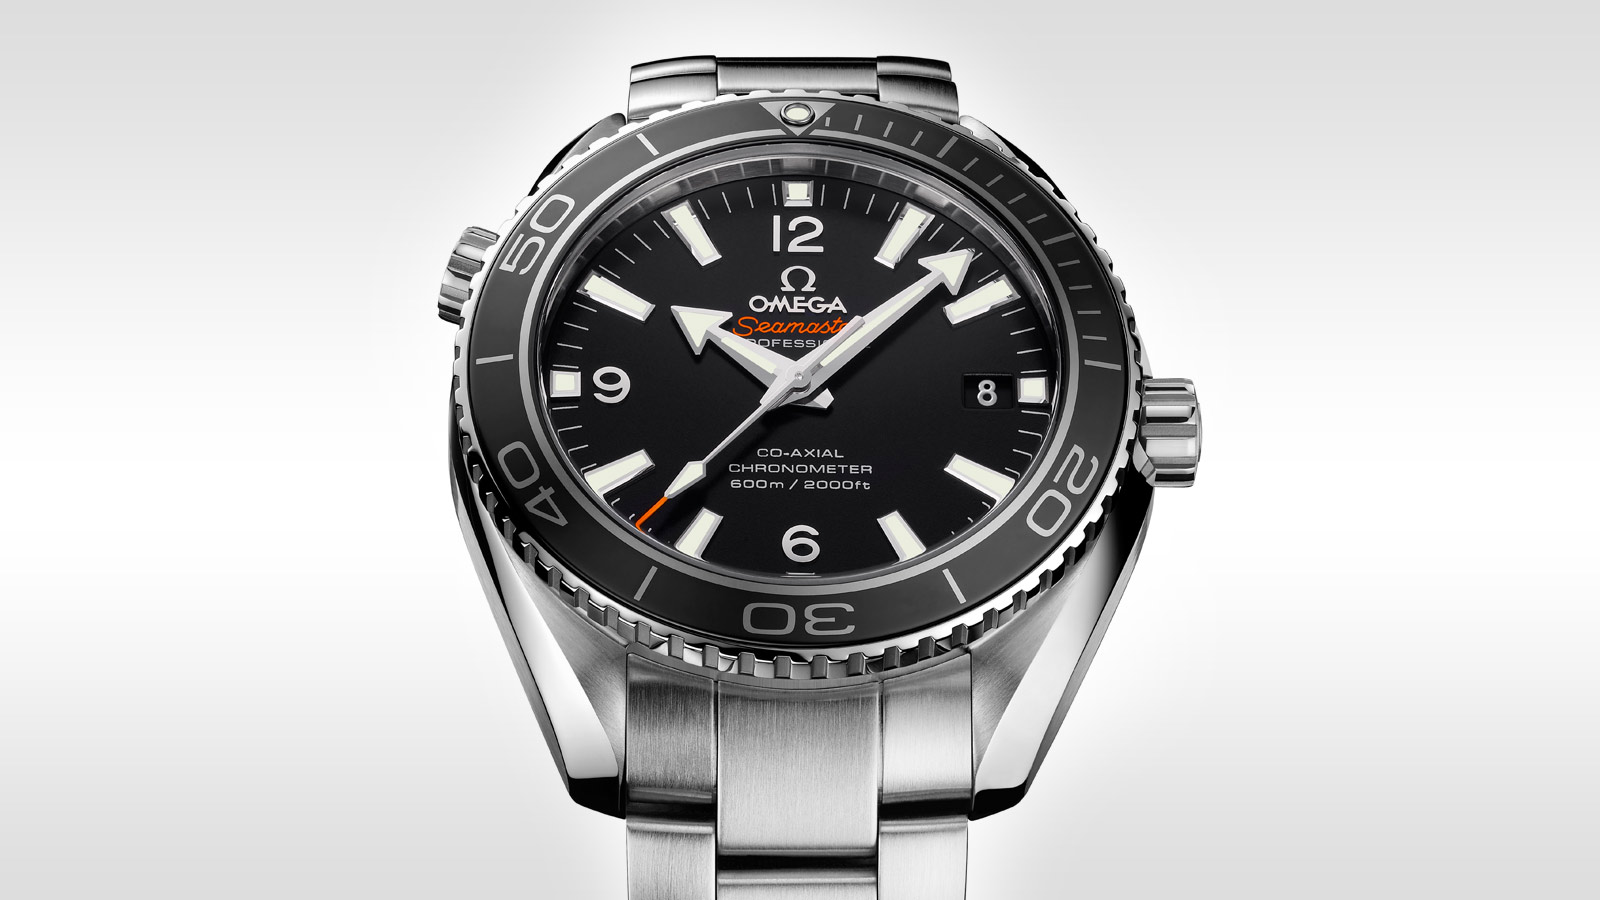 Seamaster Planet Ocean 600M Planet Ocean 600M Omega Co‑Axial 42 mm - 232.30.42.21.01.001 - Ver 1